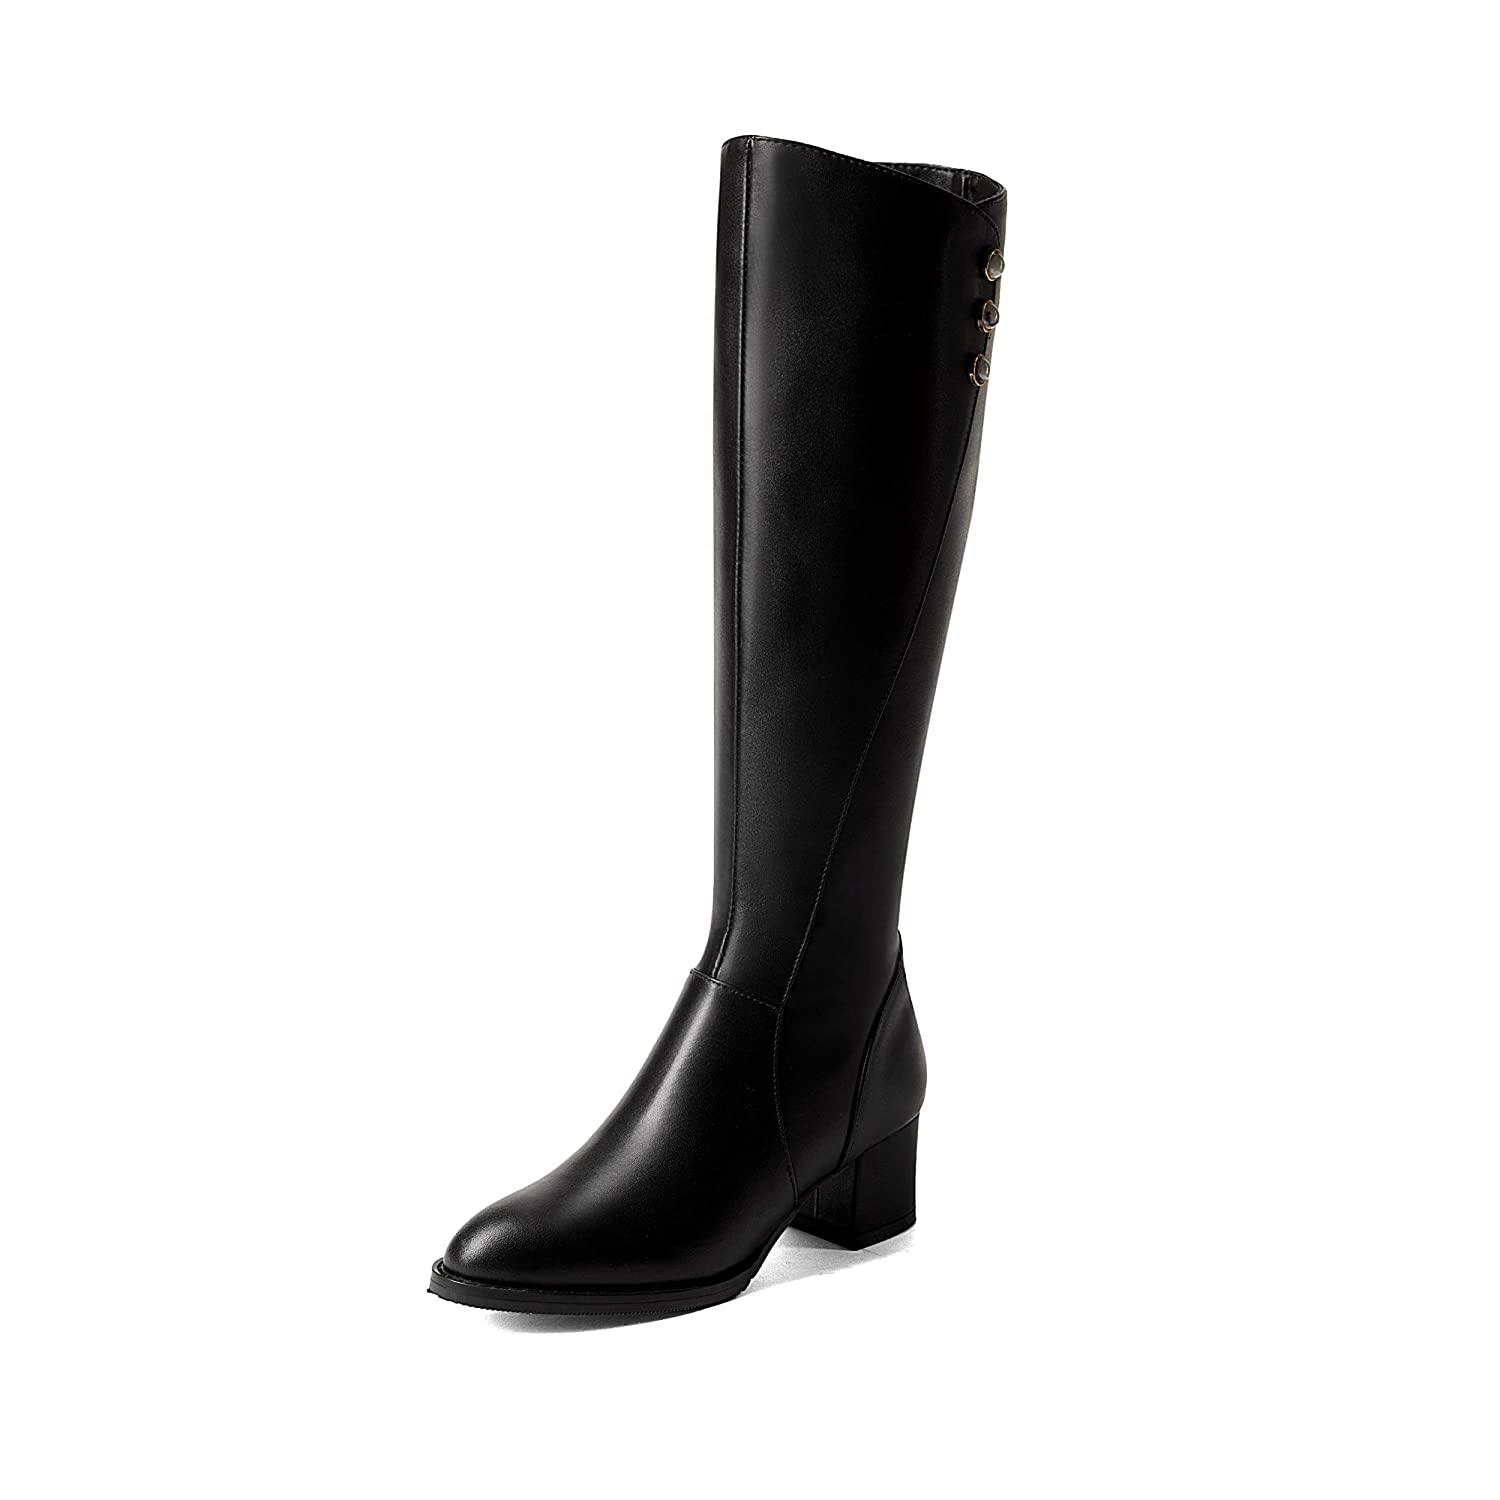 Black MAYPIE Womens Toanyon Leather Zipper Knee-High Boots